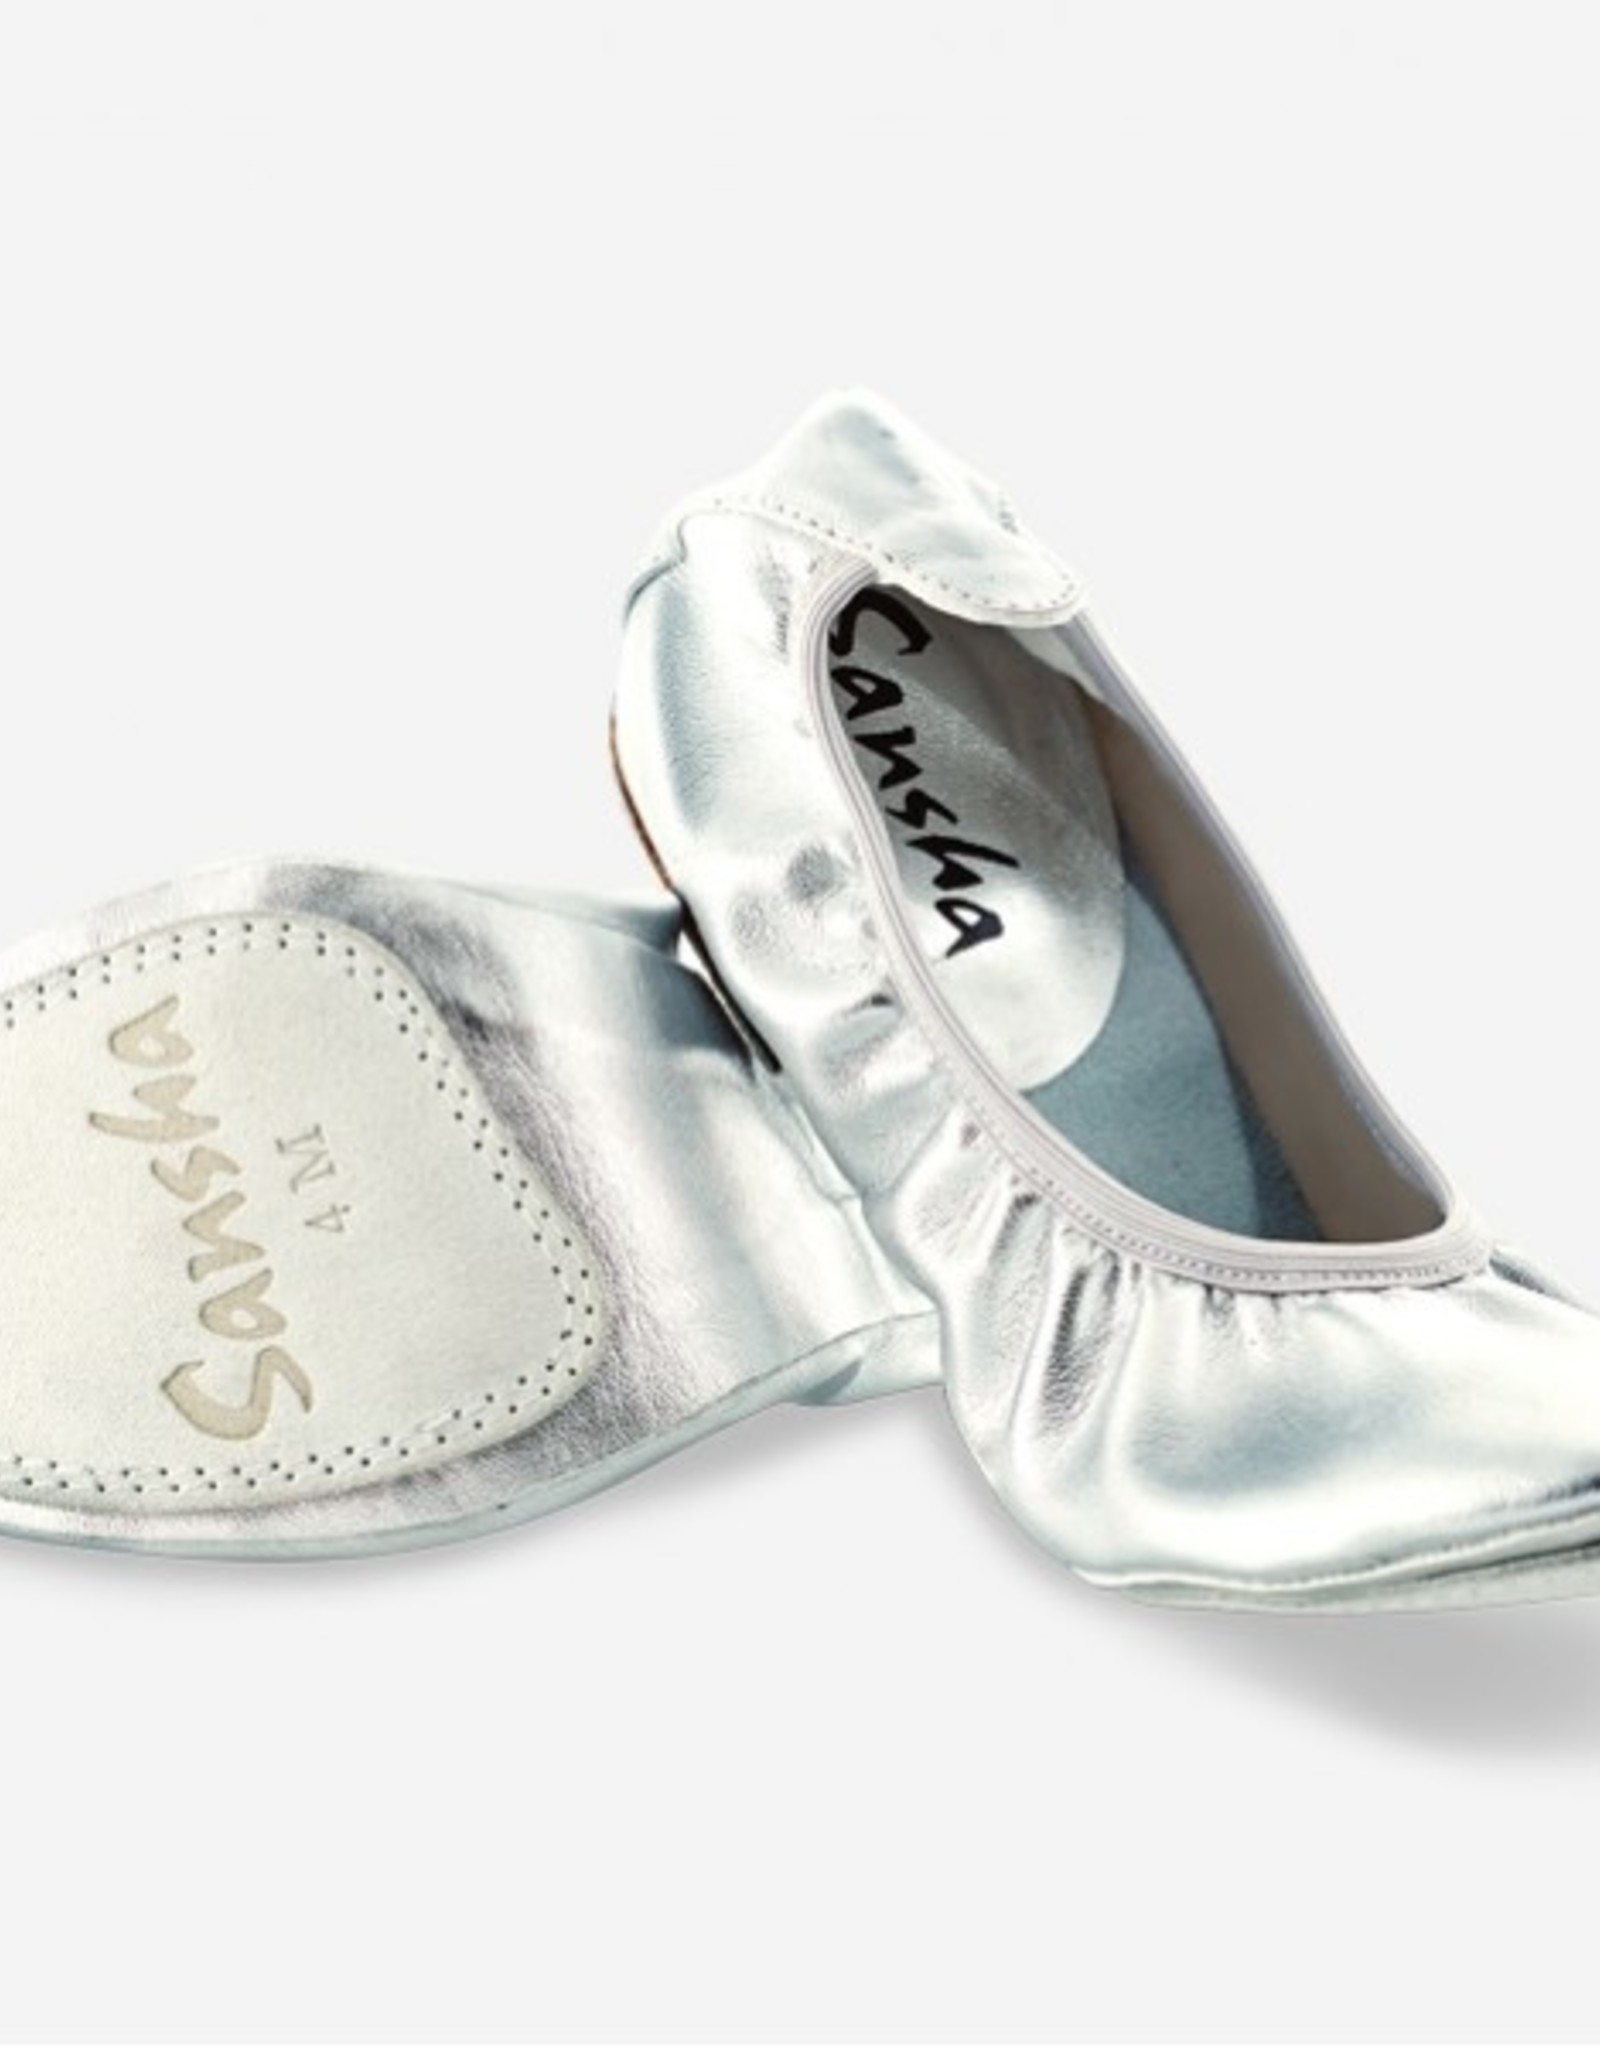 SANSHA ISTANBUL LEATHER BELLY DANCING SHOES (TK21)